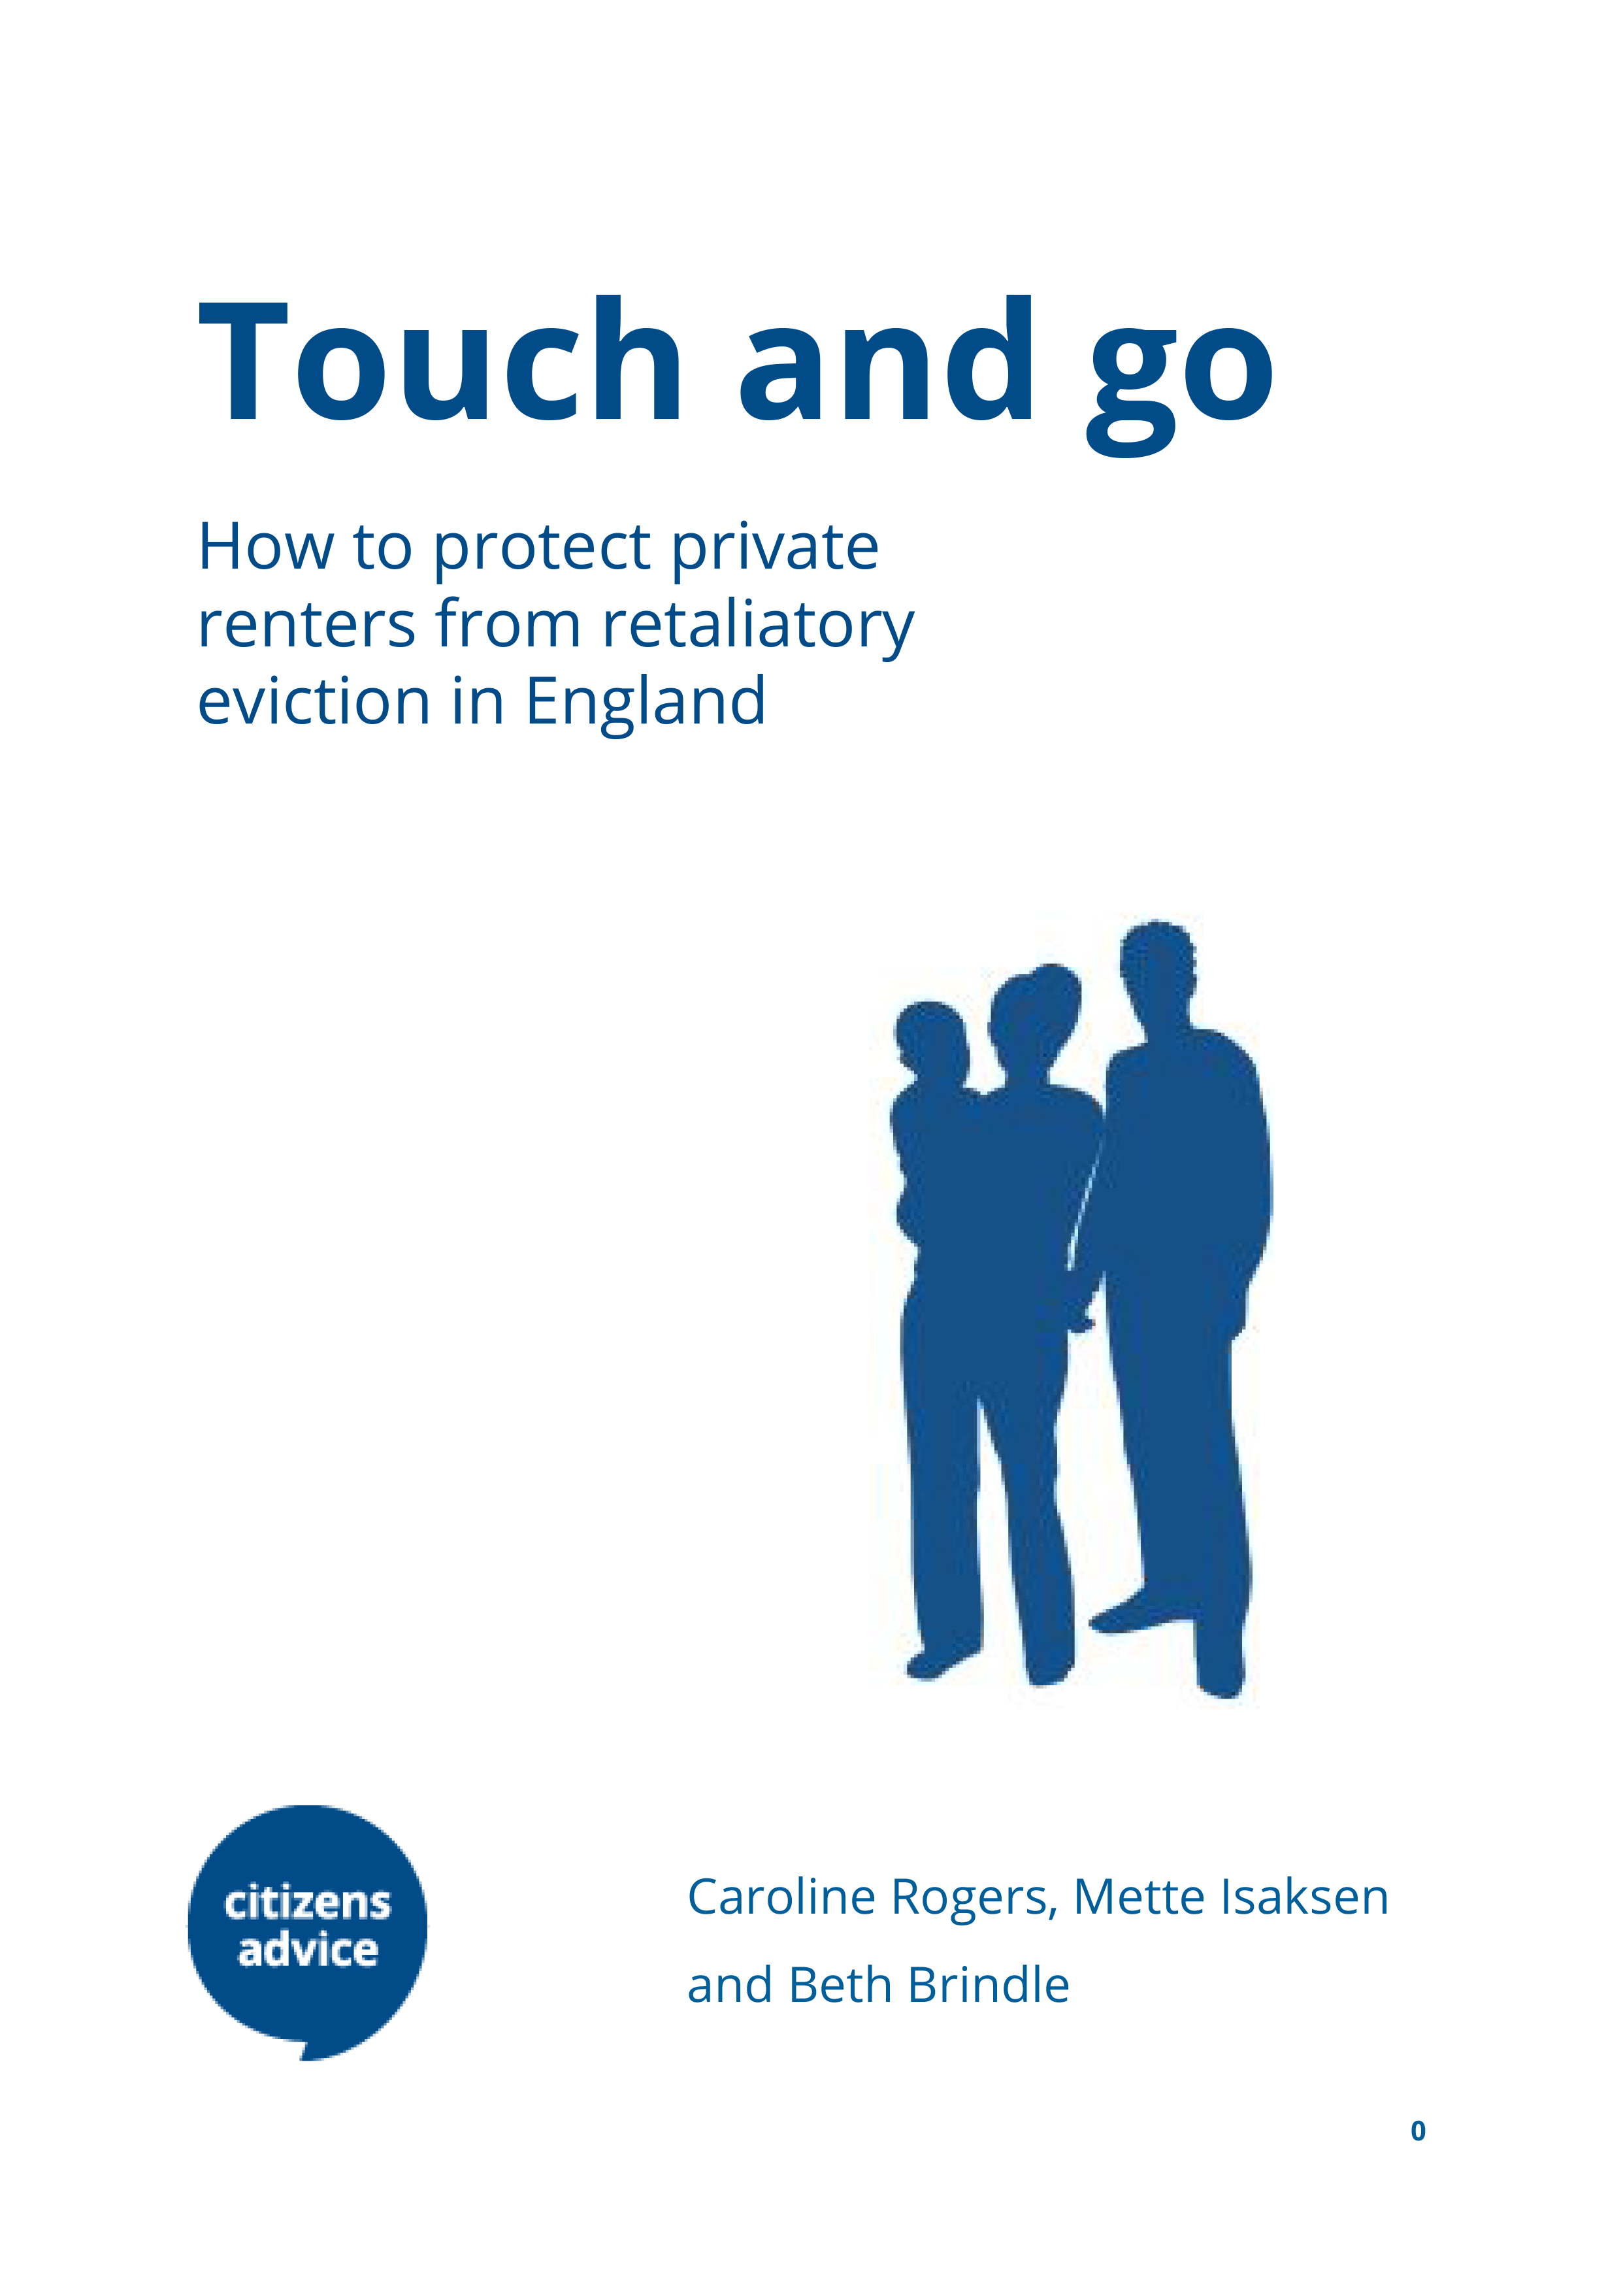 Touch and go report cover